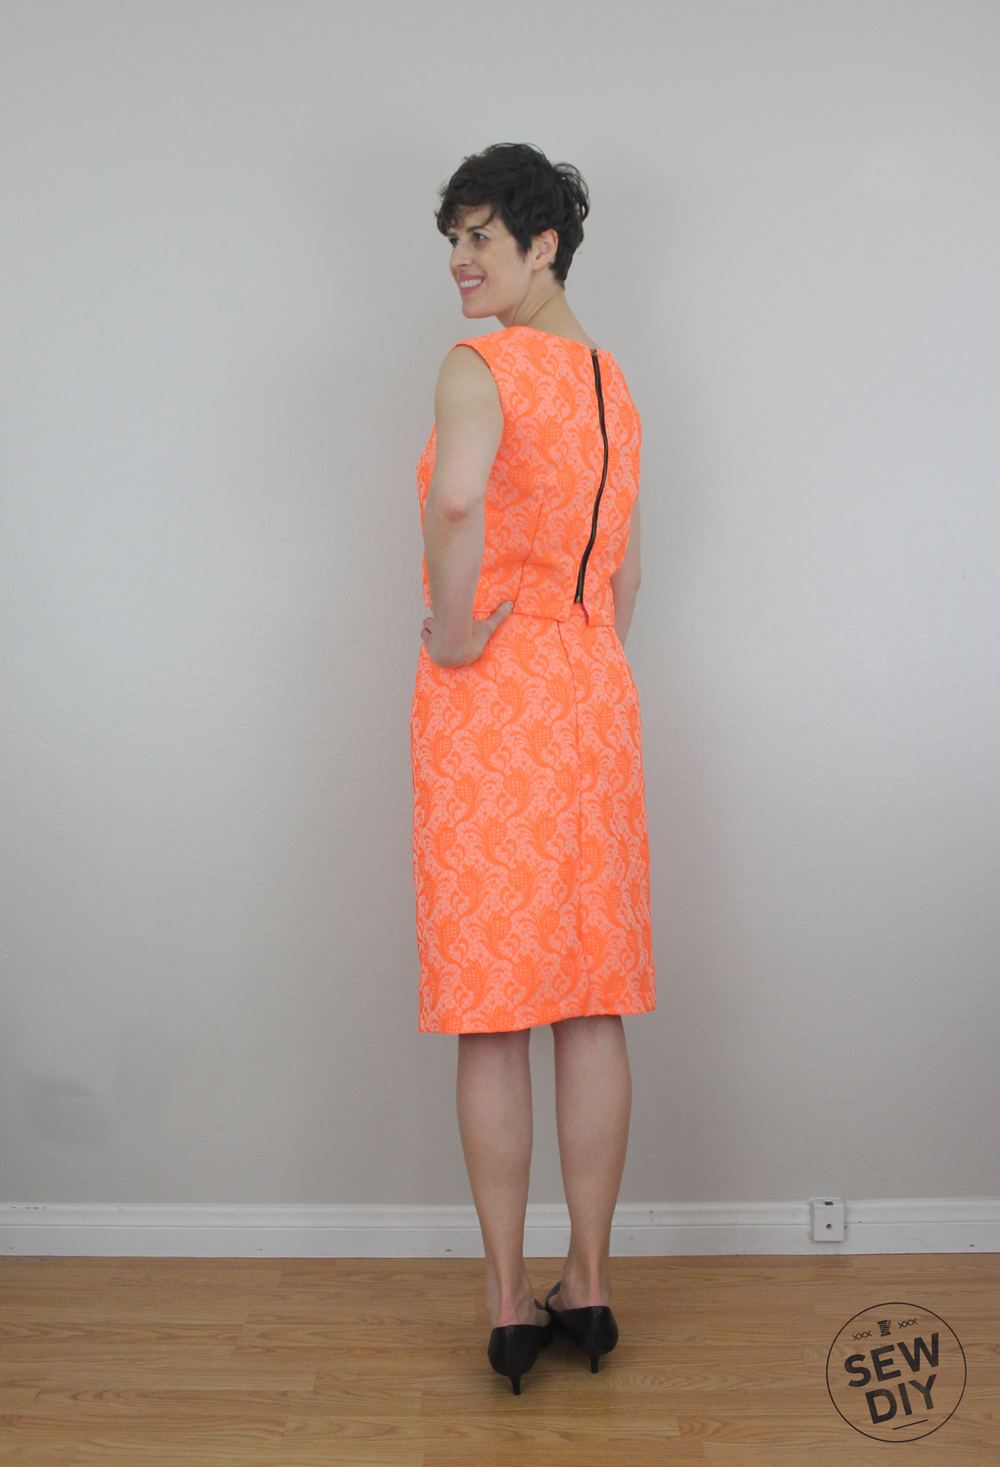 Sew DIY Neon Orange Brocade Pencil Skirt Back